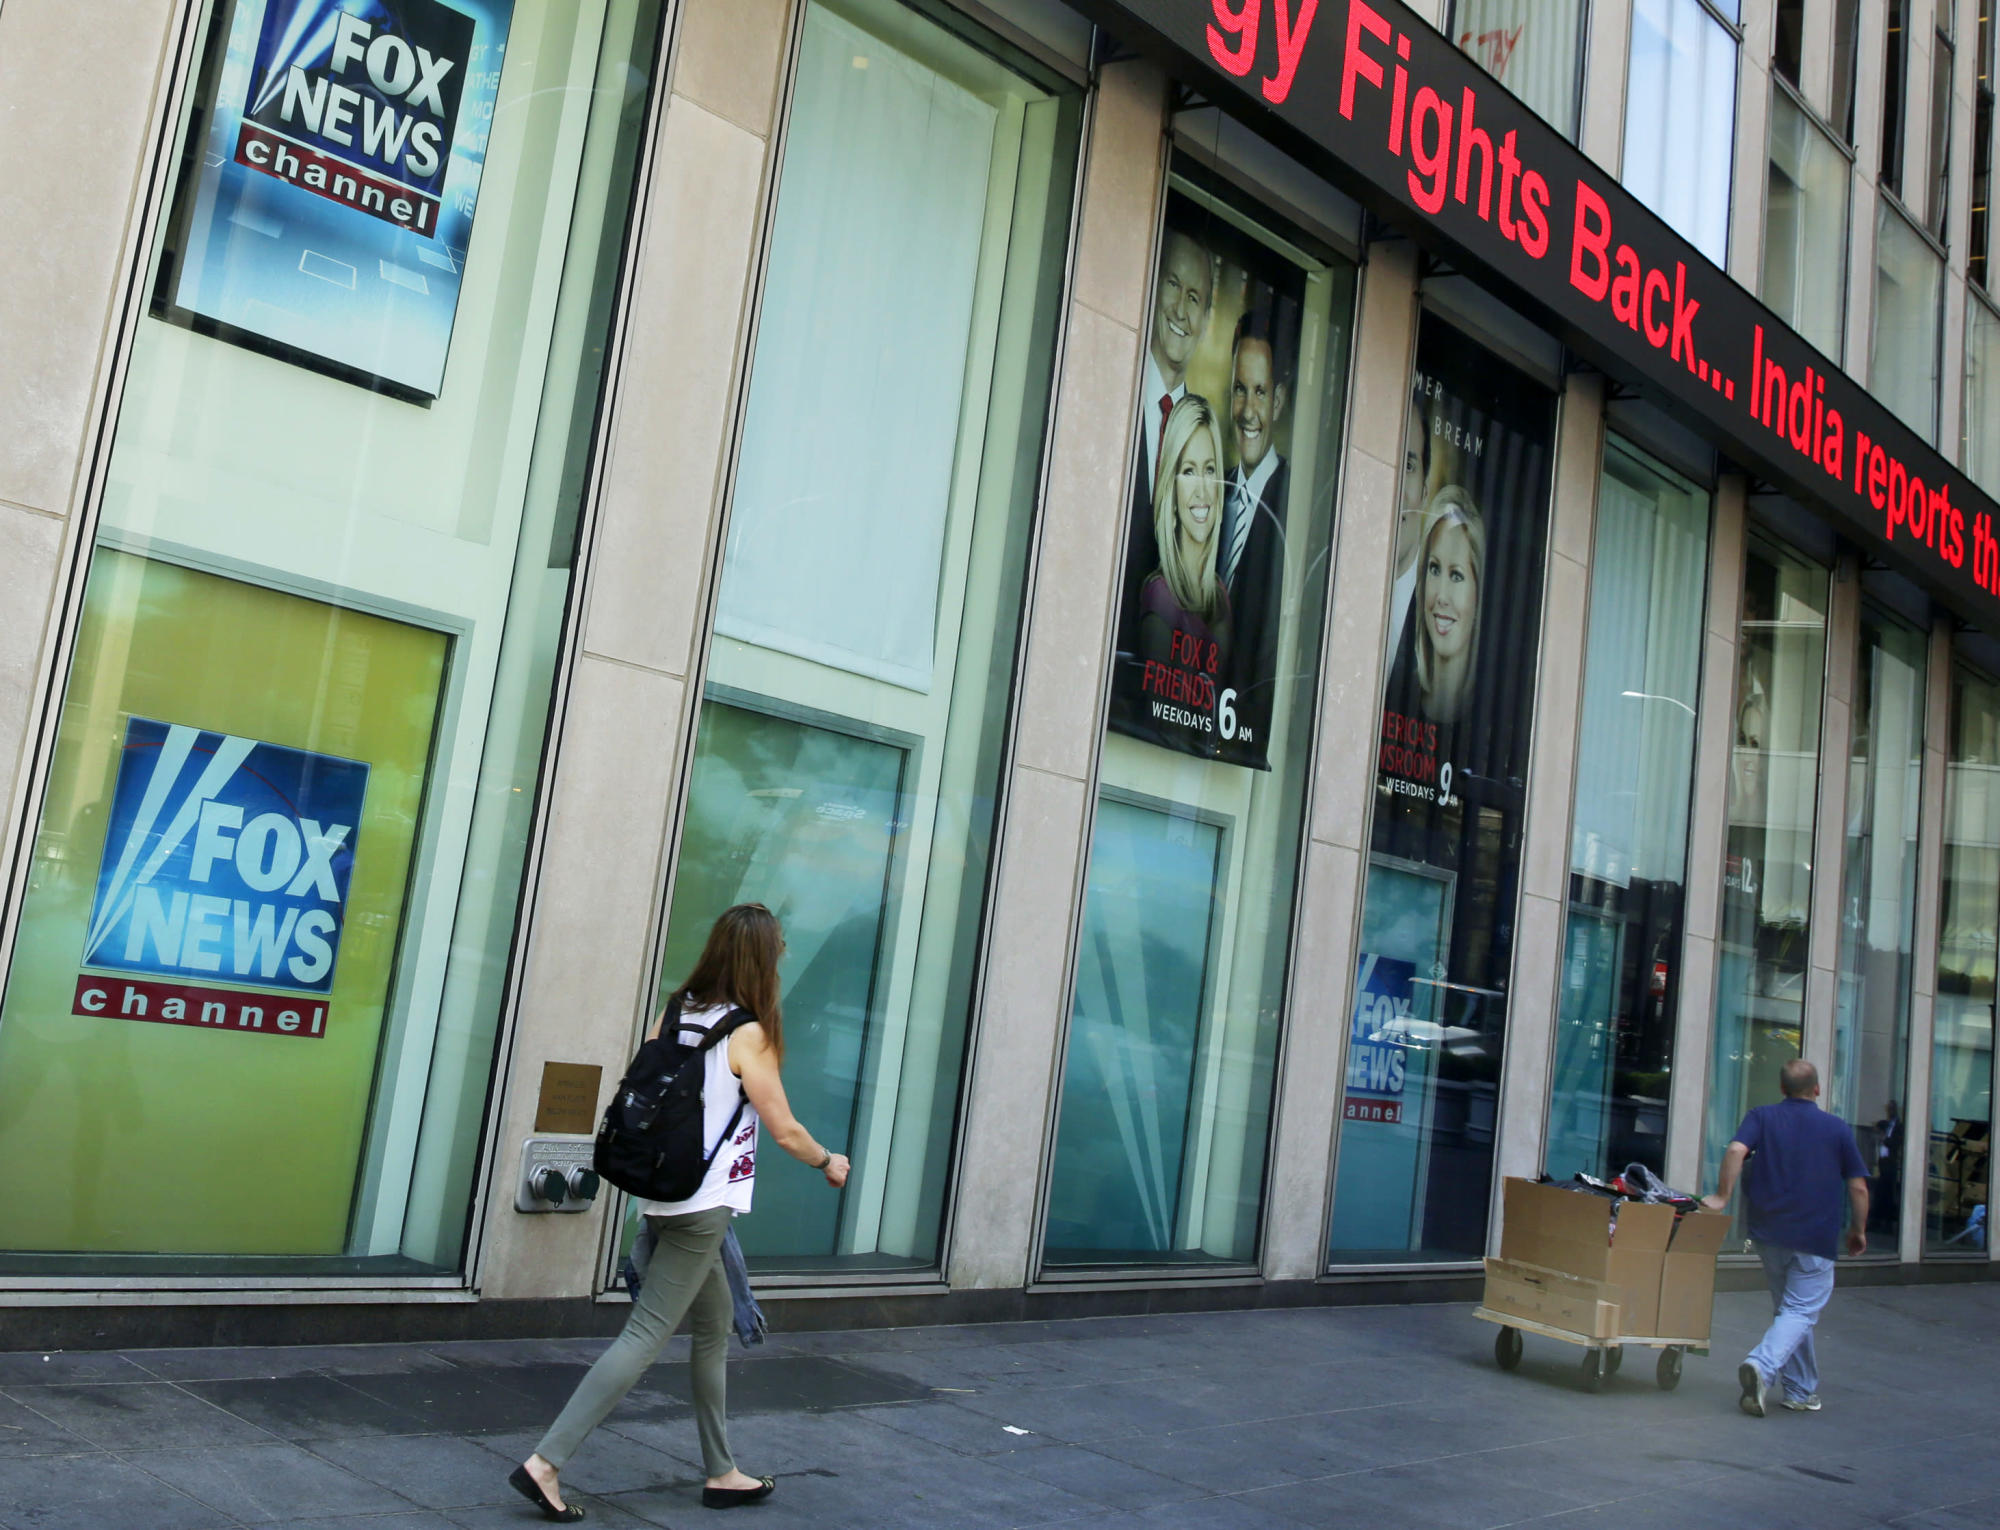 Pressure mounts, rifts emerge at Fox News over election